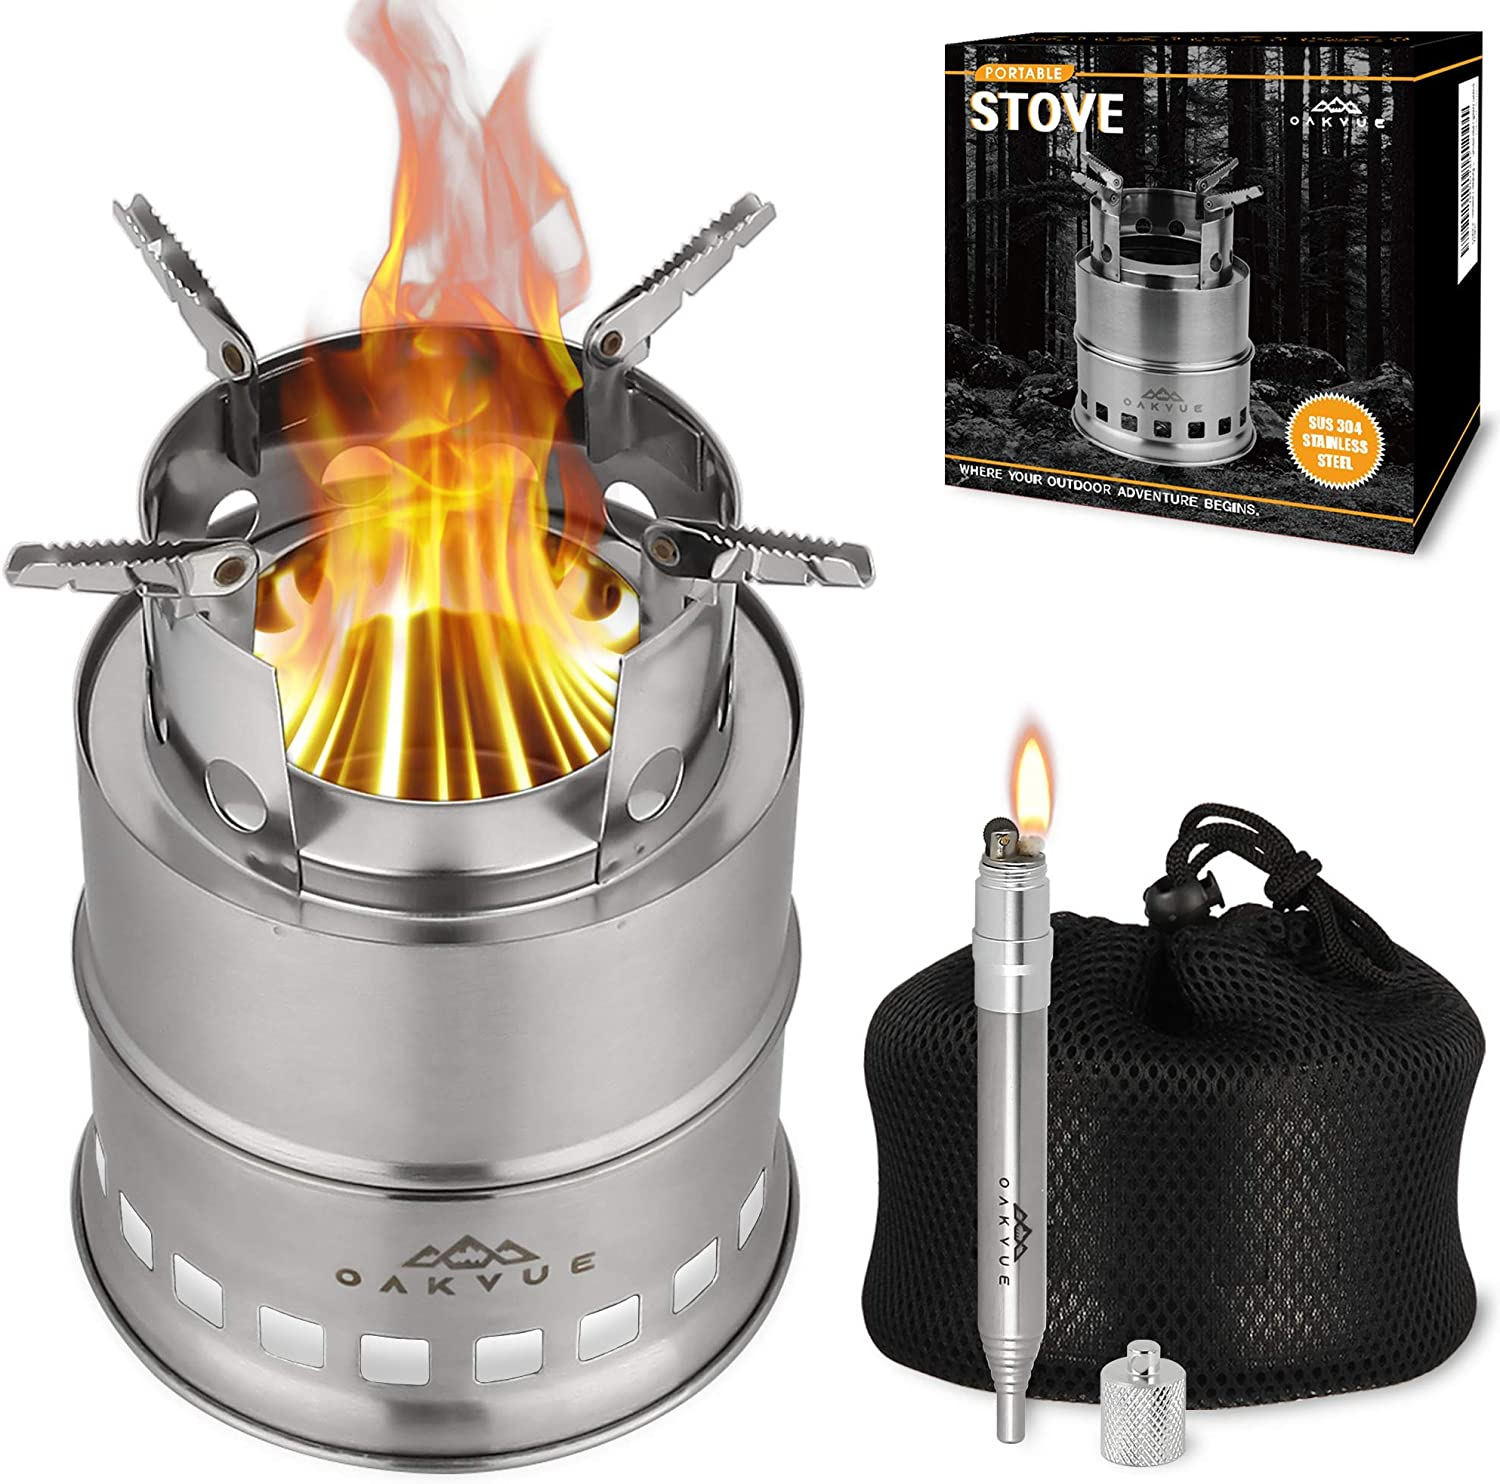 OAKVUE Portable Camping Stove – Stainless Steel Camping Cookware – Lightweight Backpack Stove – Mini Wood Burning Stove for Camping and Hiking – Gasifier Camp Stove – Fire Bellow Lighter Bonus